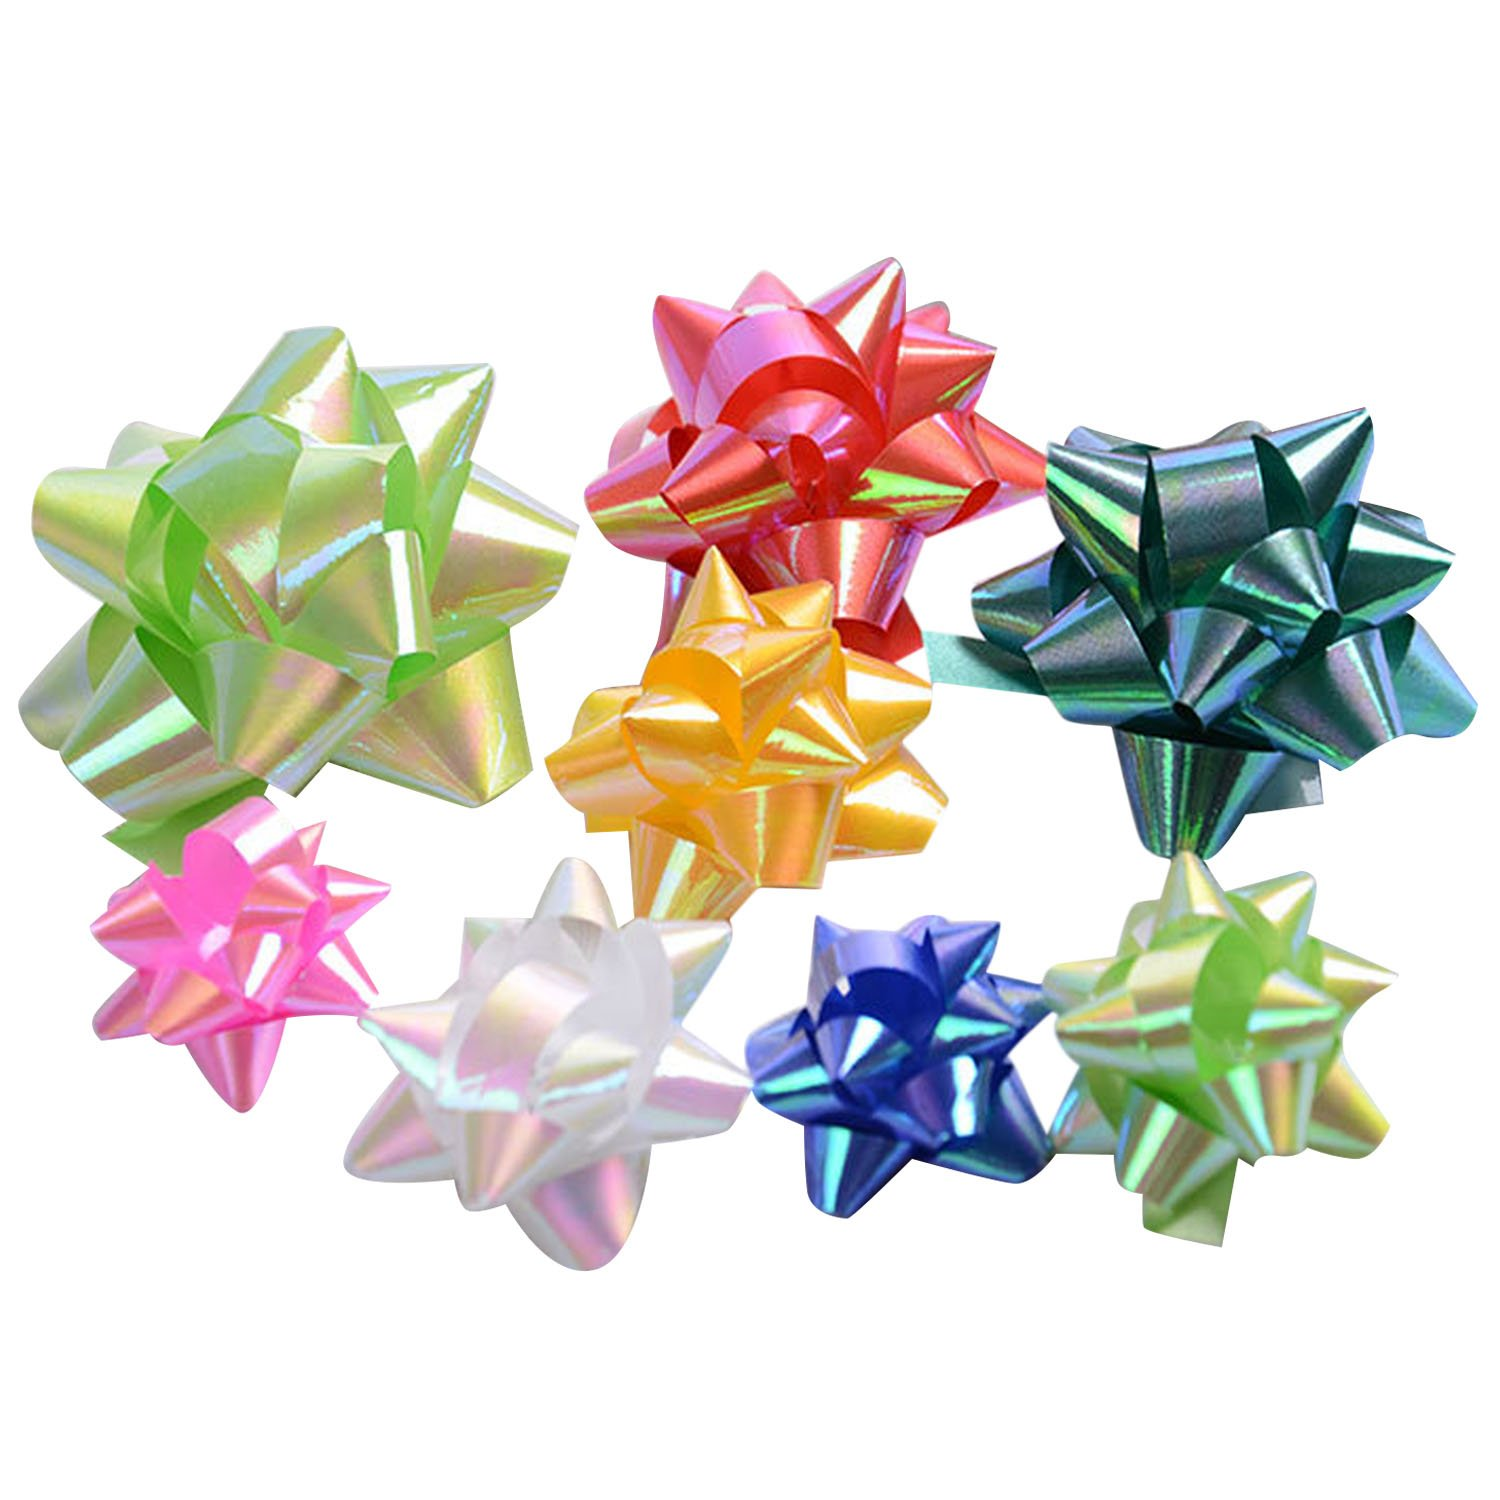 51pcs 3 Sizes Colorful Self Adhesive Christmas Star Flower Gift Wrap Bows Craft Supplies Present Package Wrapping Decoration Wedding Decoration Random Colors Gosear